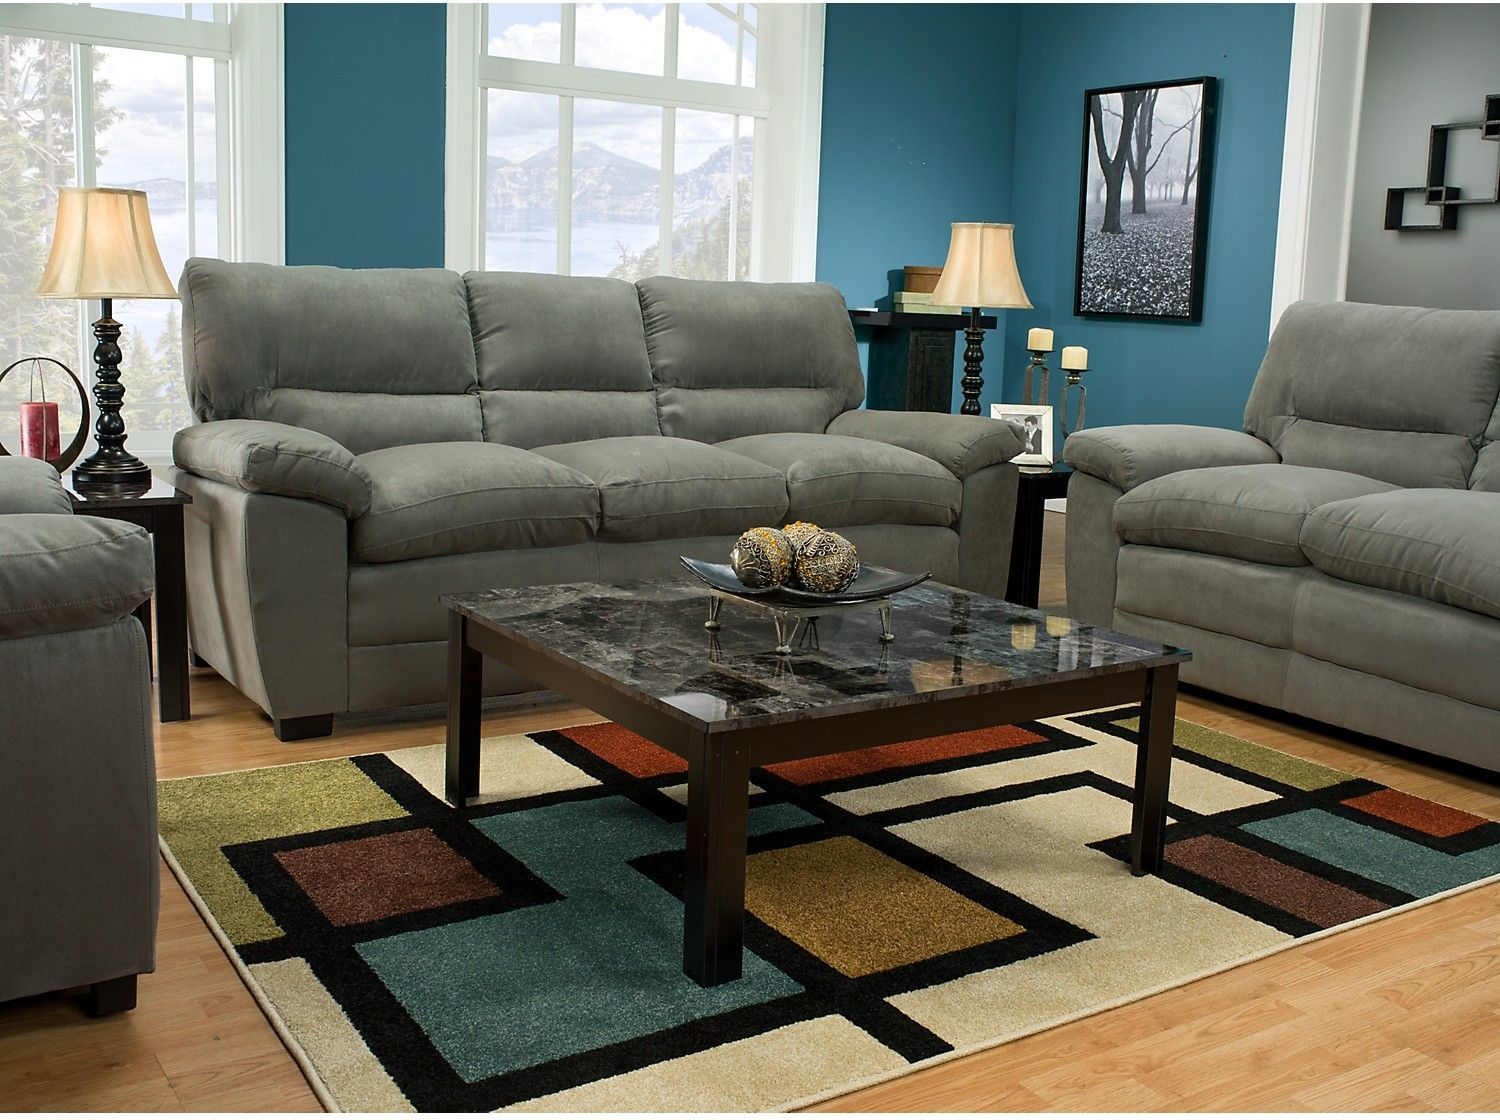 Awesome Peyton Microsuede Sofa   Grey | The Brick · Living Room ...